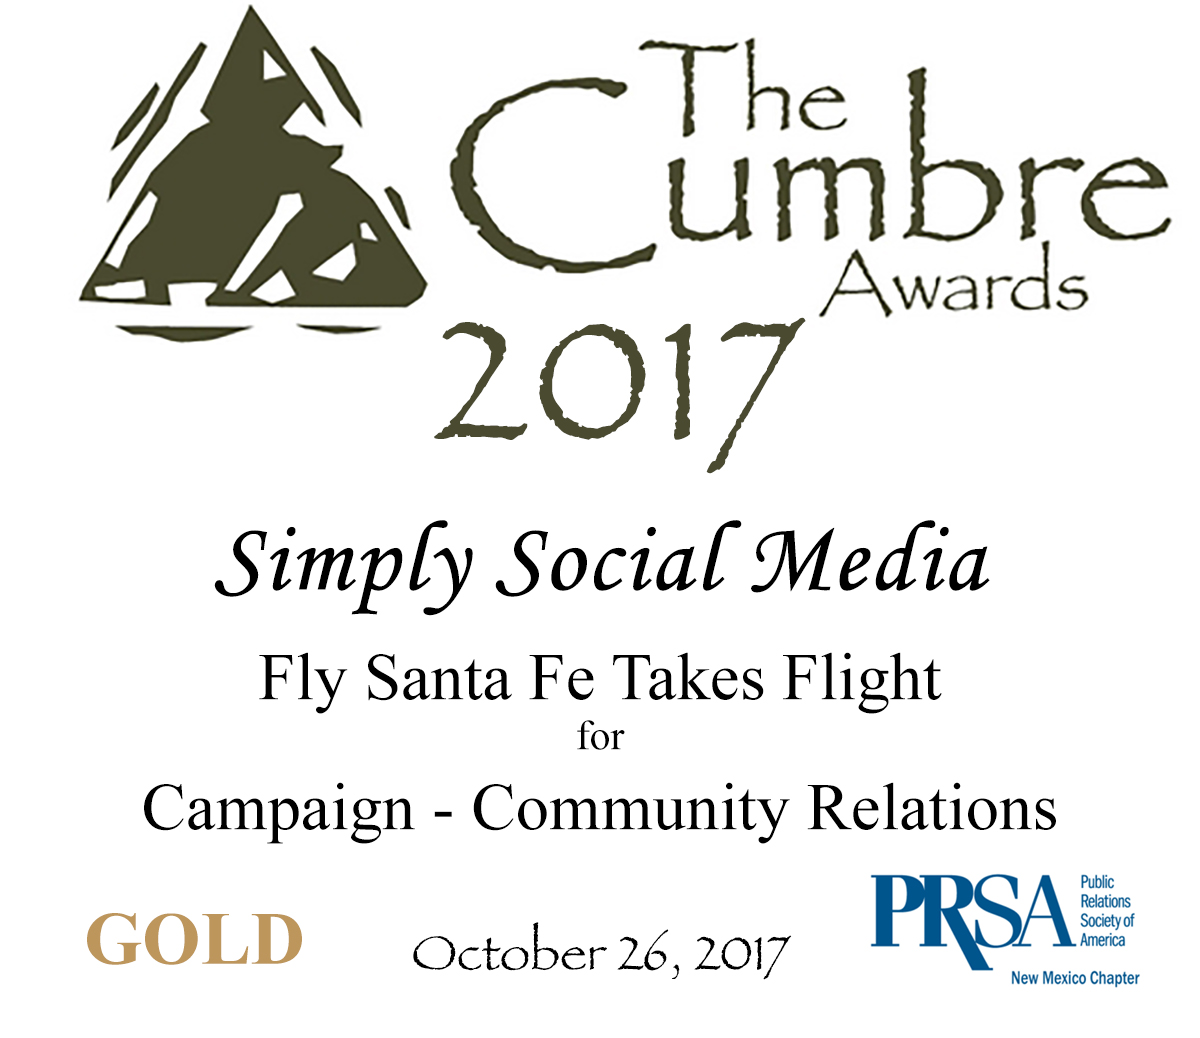 Simply Social Media Cumbre Award 2017.jpg